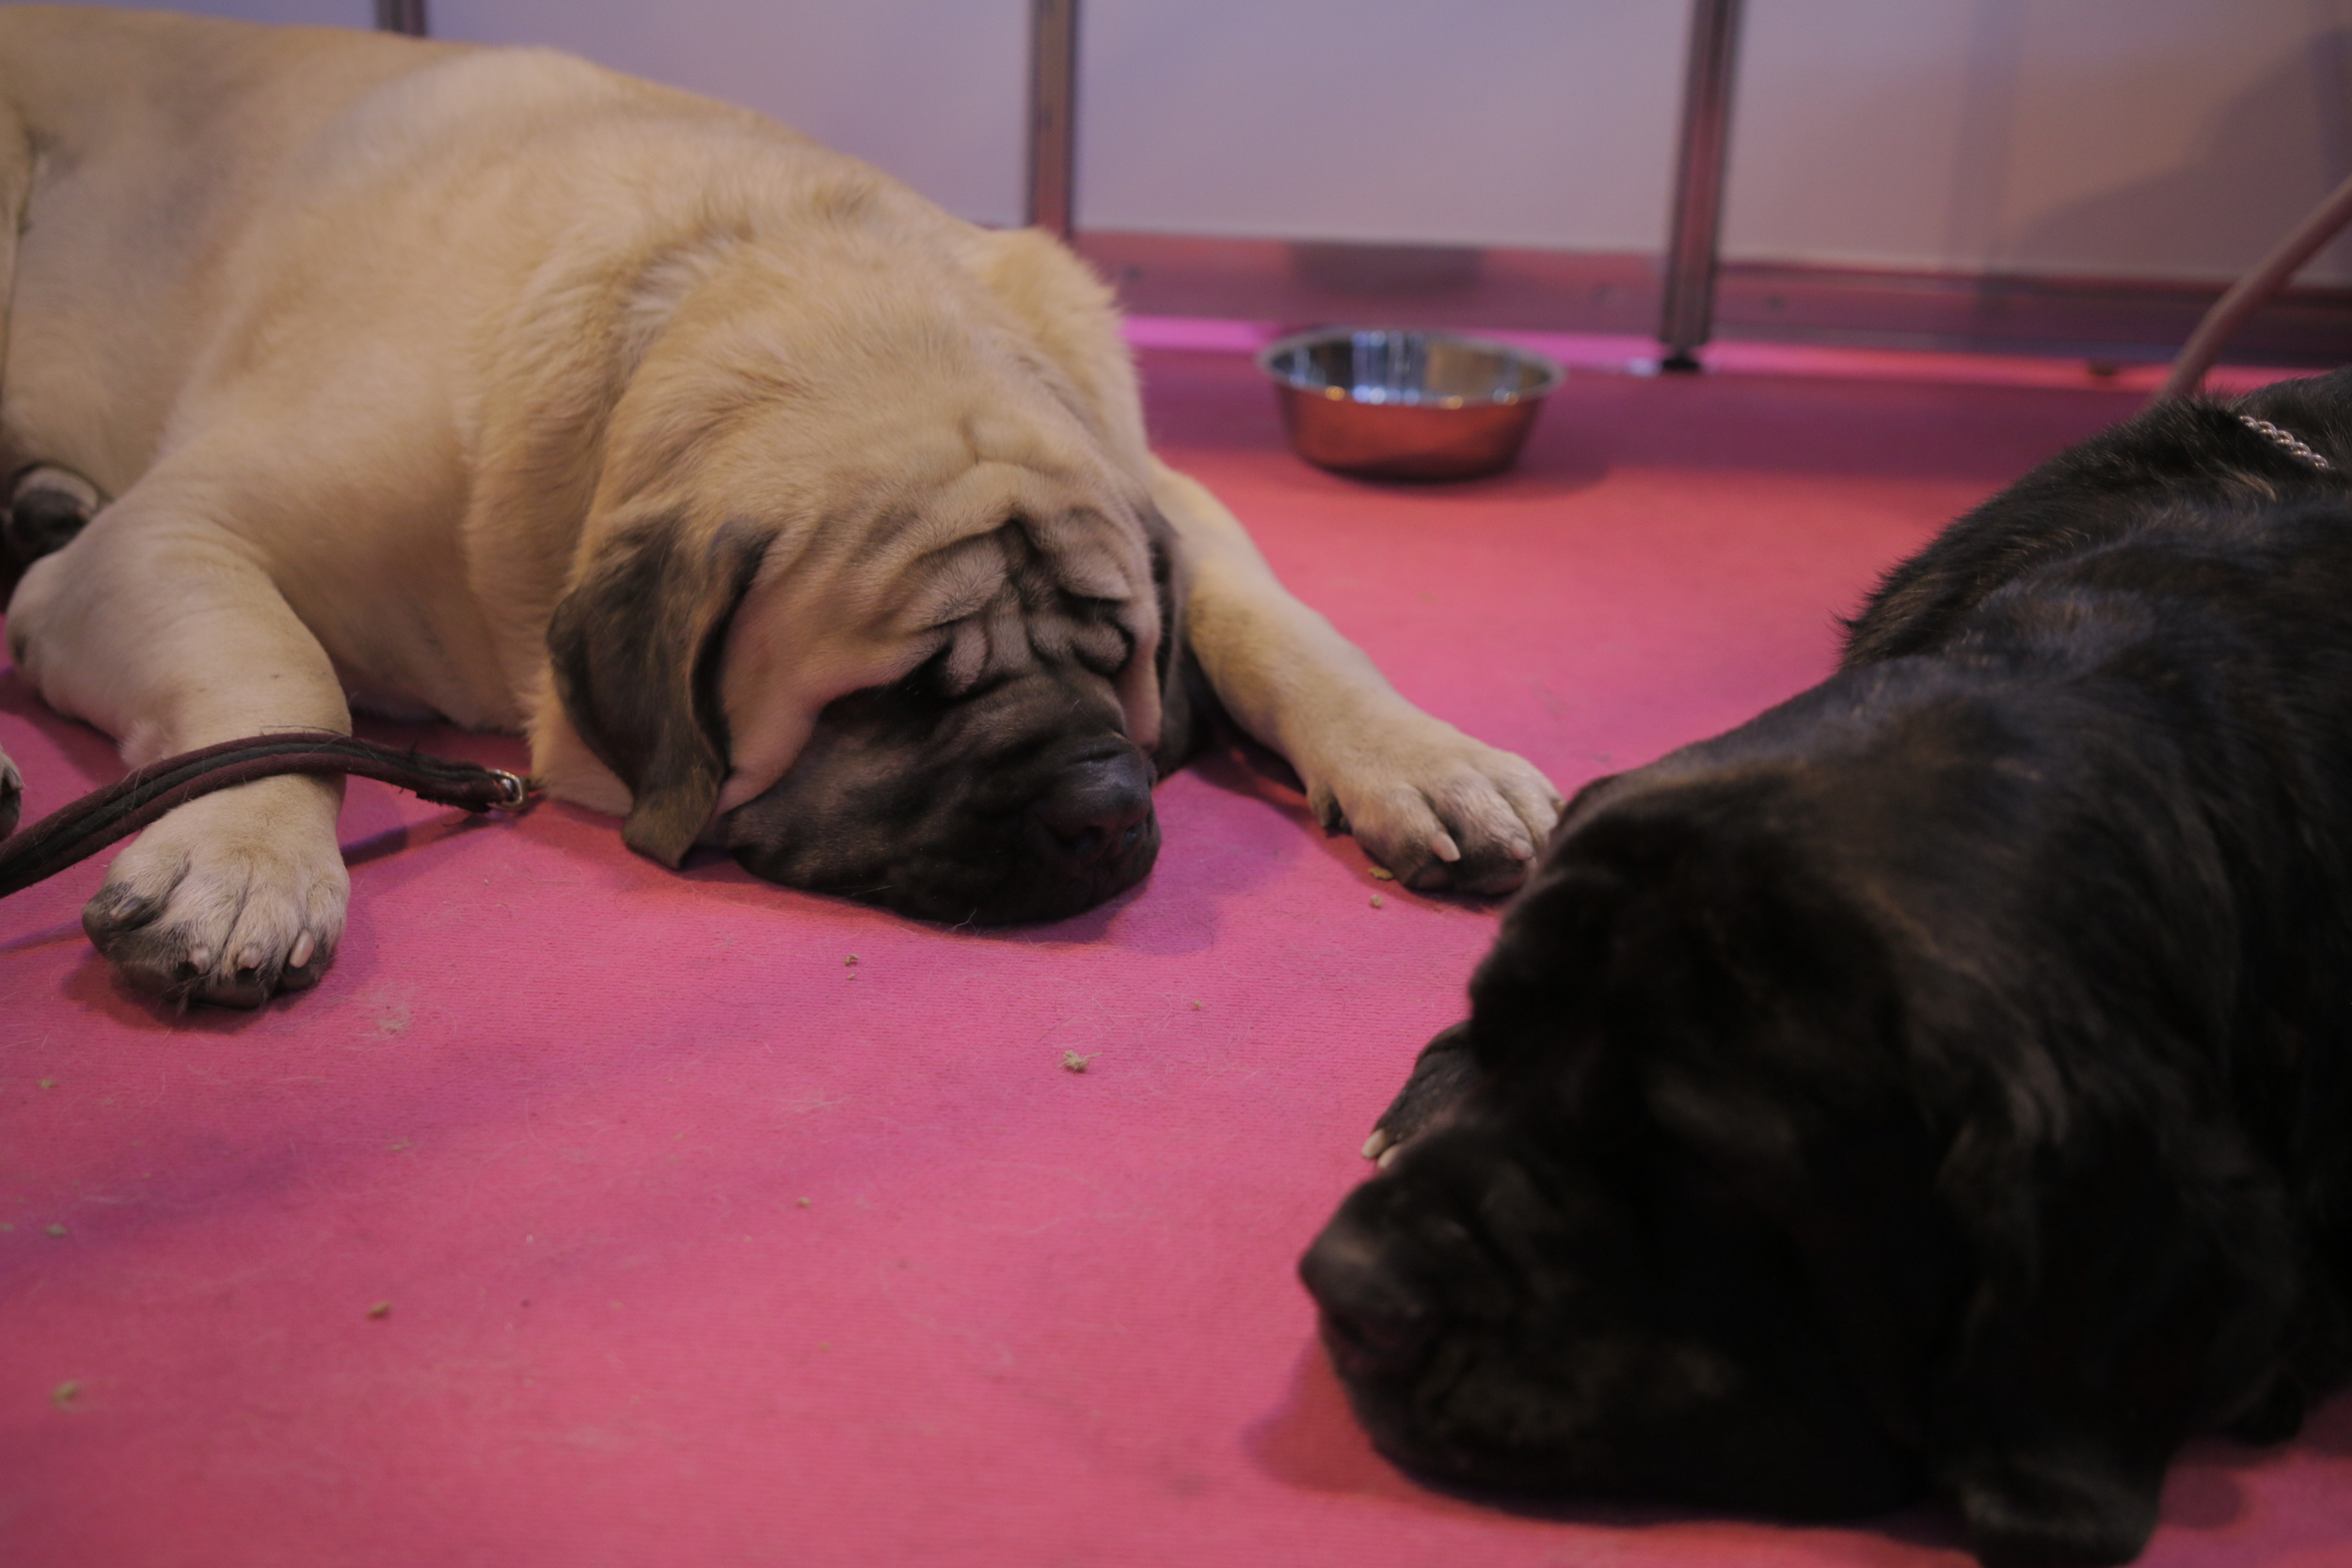 Sleeping pugs on rugs